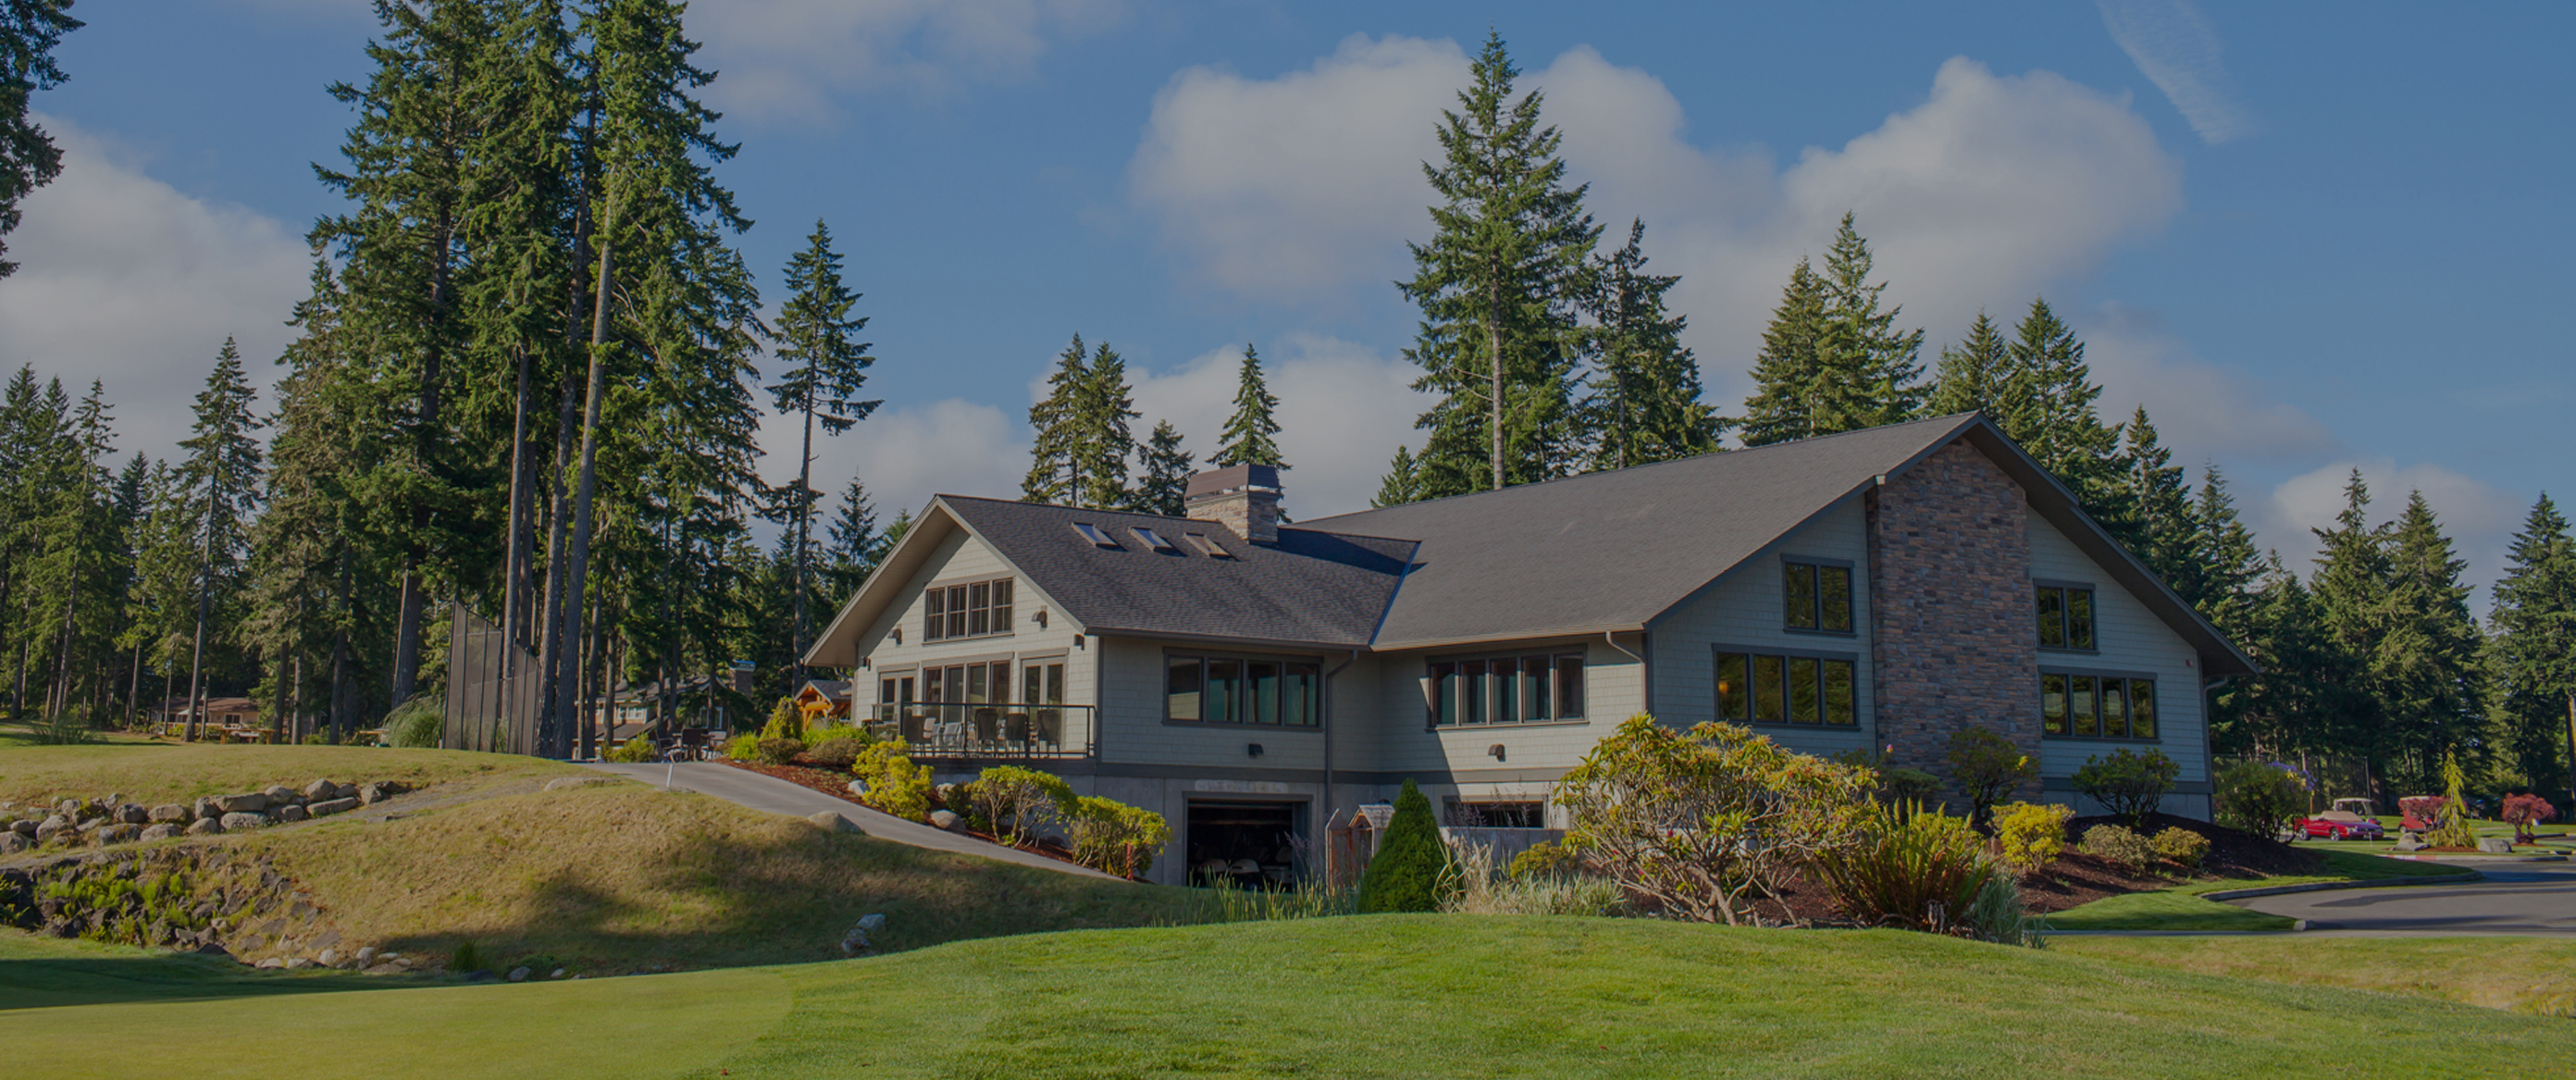 Home alderbrook properties for Alderbrook homes